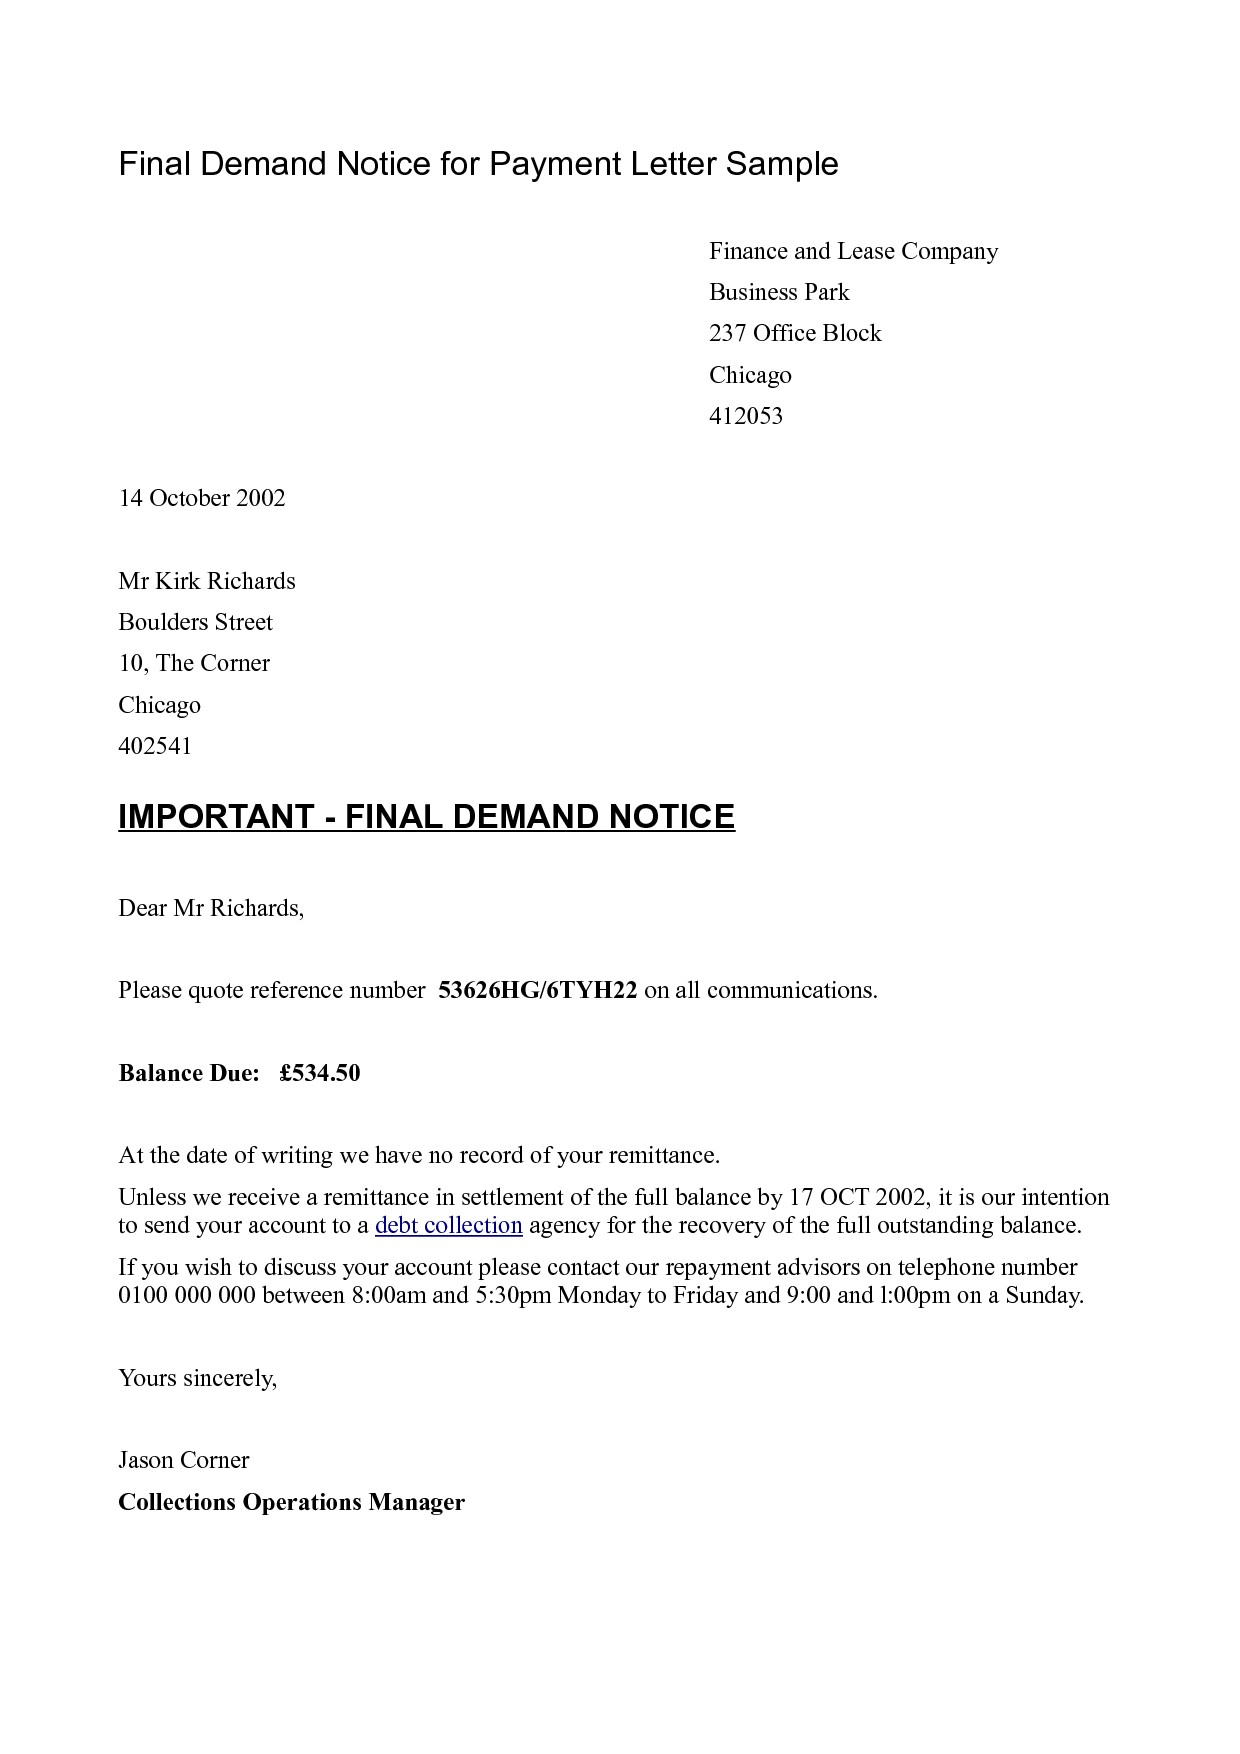 Final Demand for Payment Letter Template - Business Letter Template Request Payment Final Demand Sample